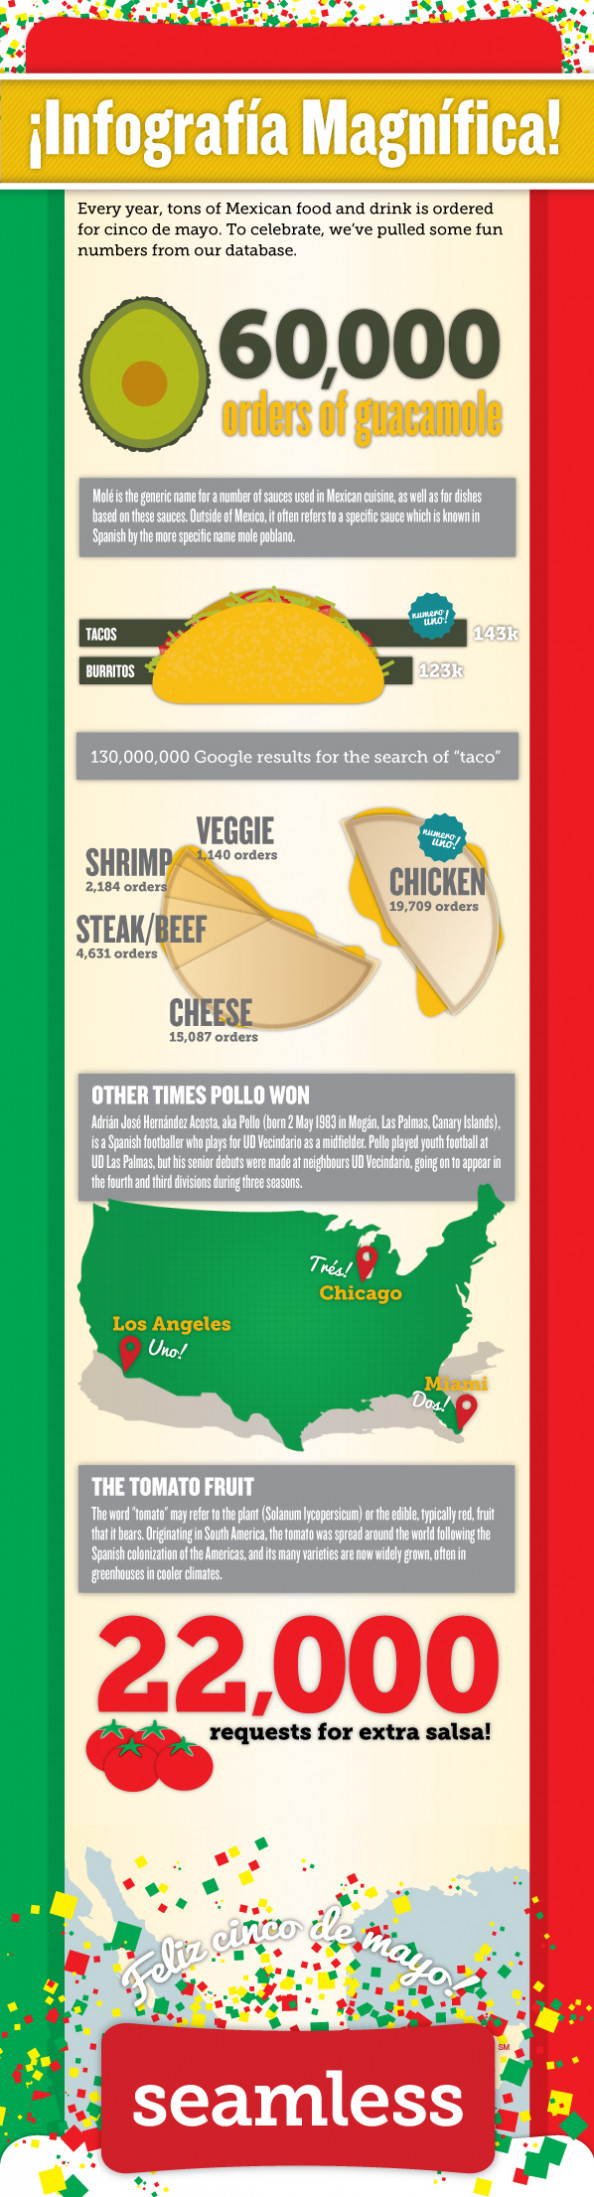 Happy Cinco de Mayo! Infographic